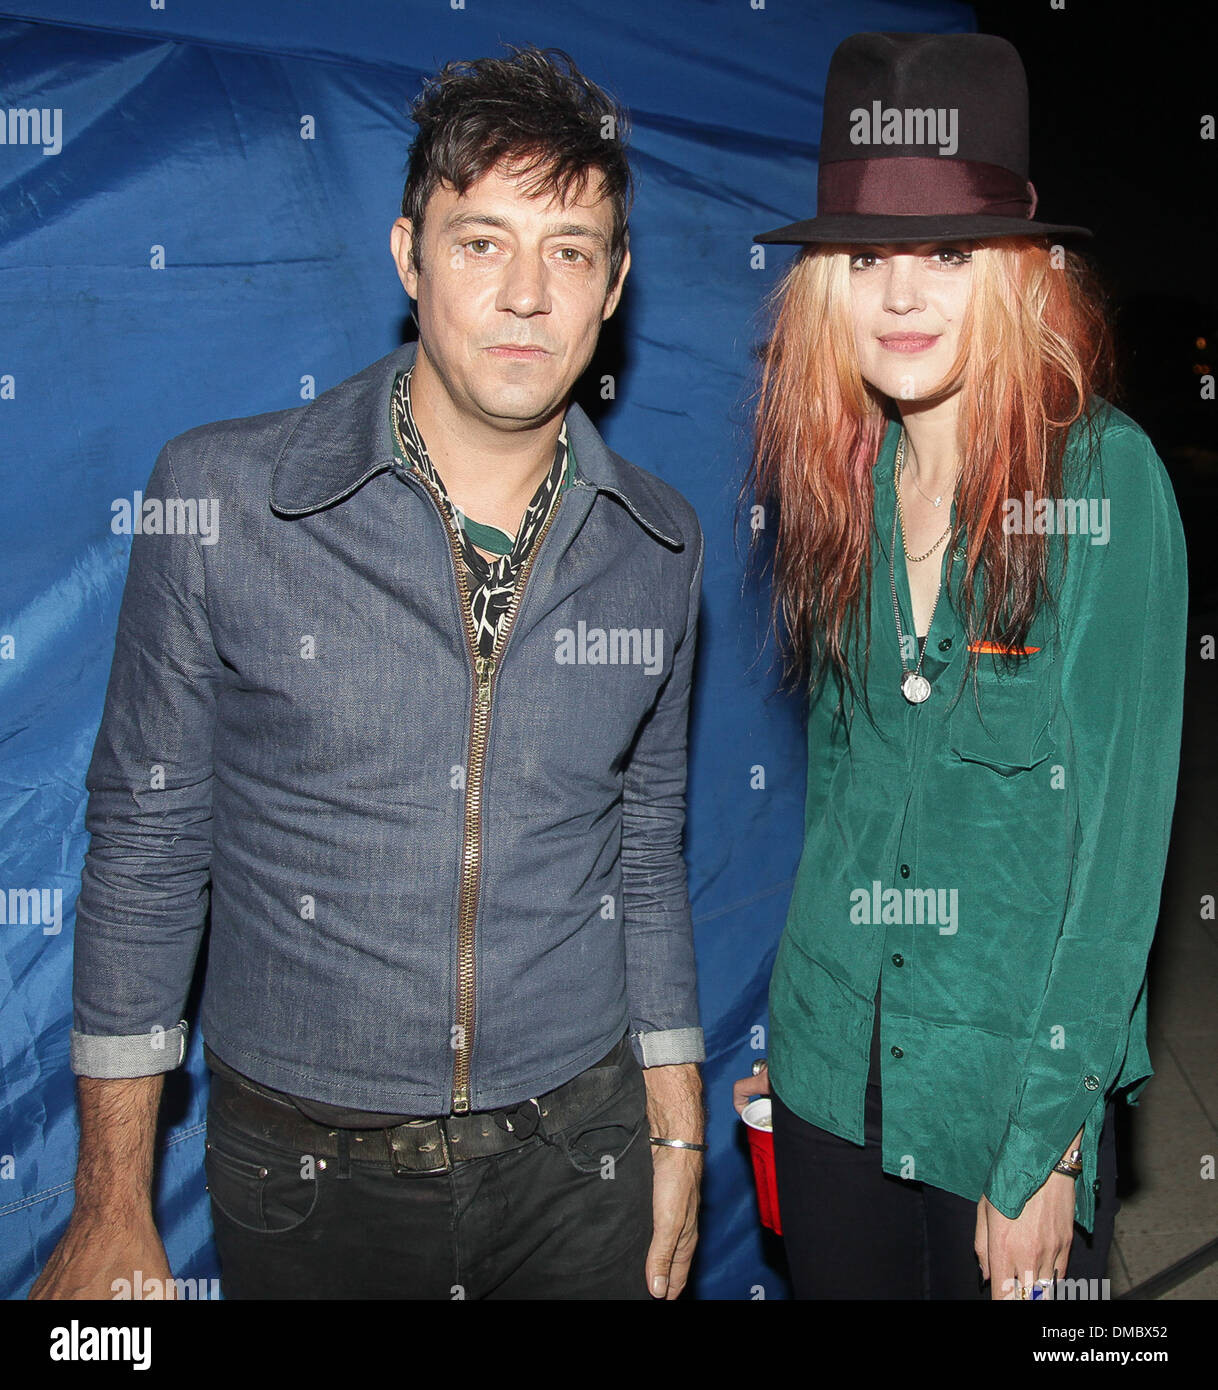 Disciplinario eso es todo Industrial  Jamie Hince and Alison Mosshart of Kills Converse City Carnage Music Stock  Photo - Alamy